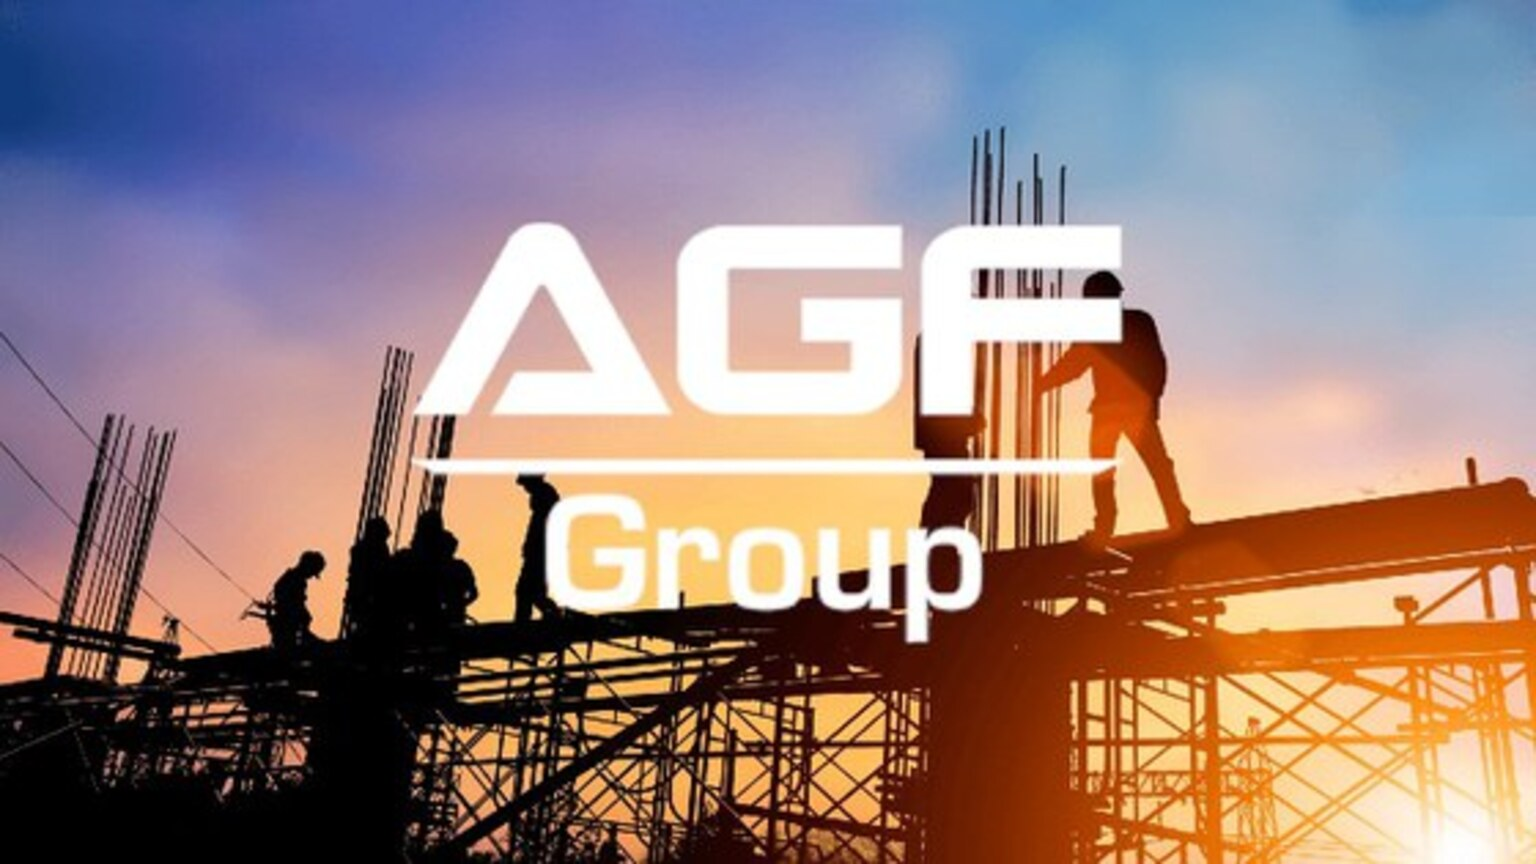 agf-tagetik-cloud-for-closing-consolidation